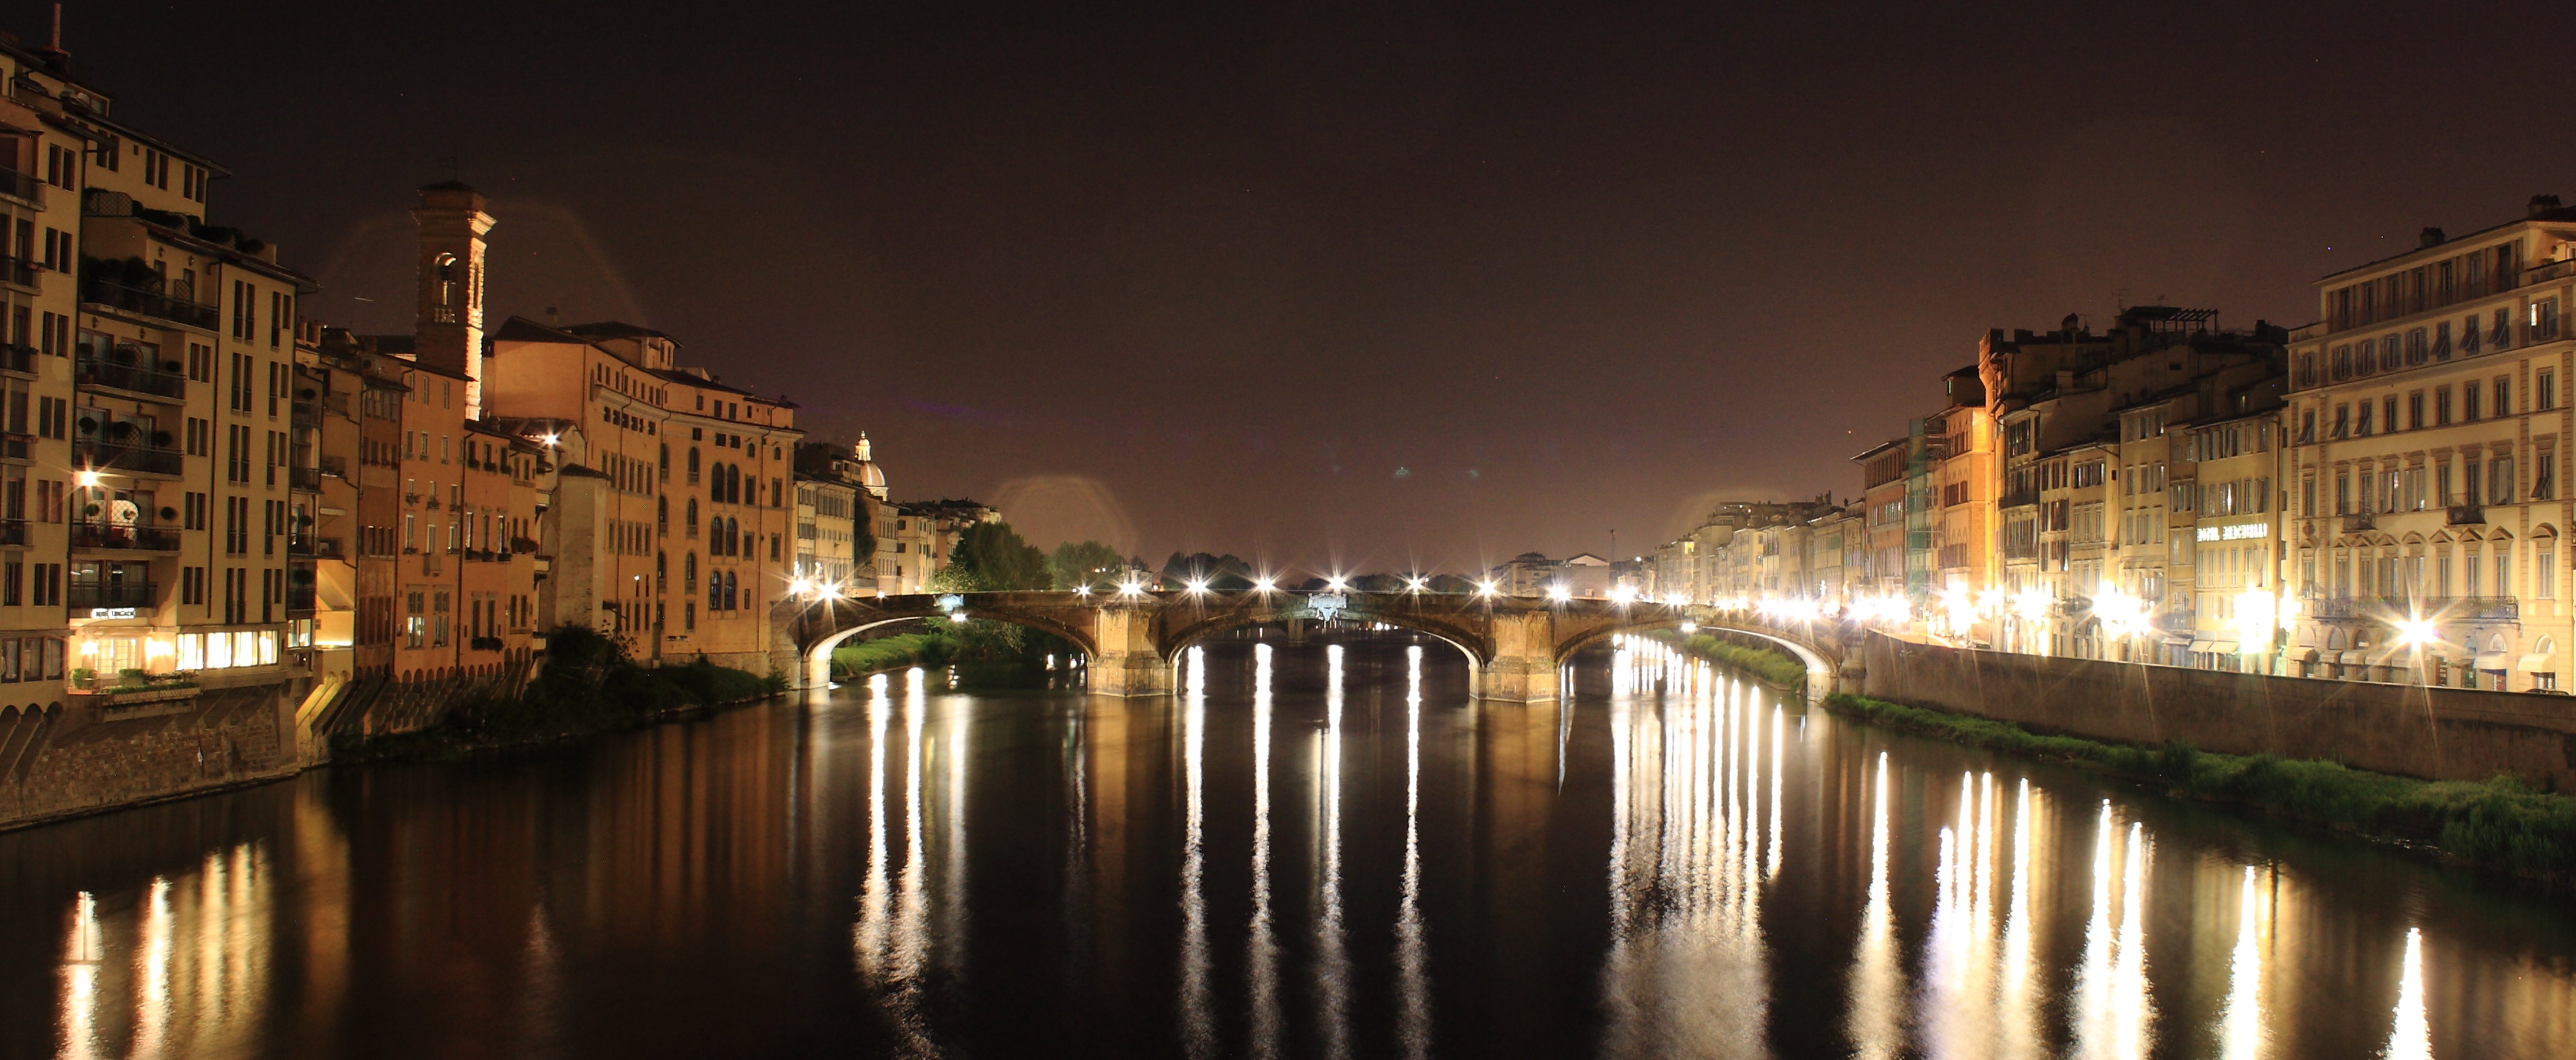 Florence by night, what's not to like? - [authors own image]